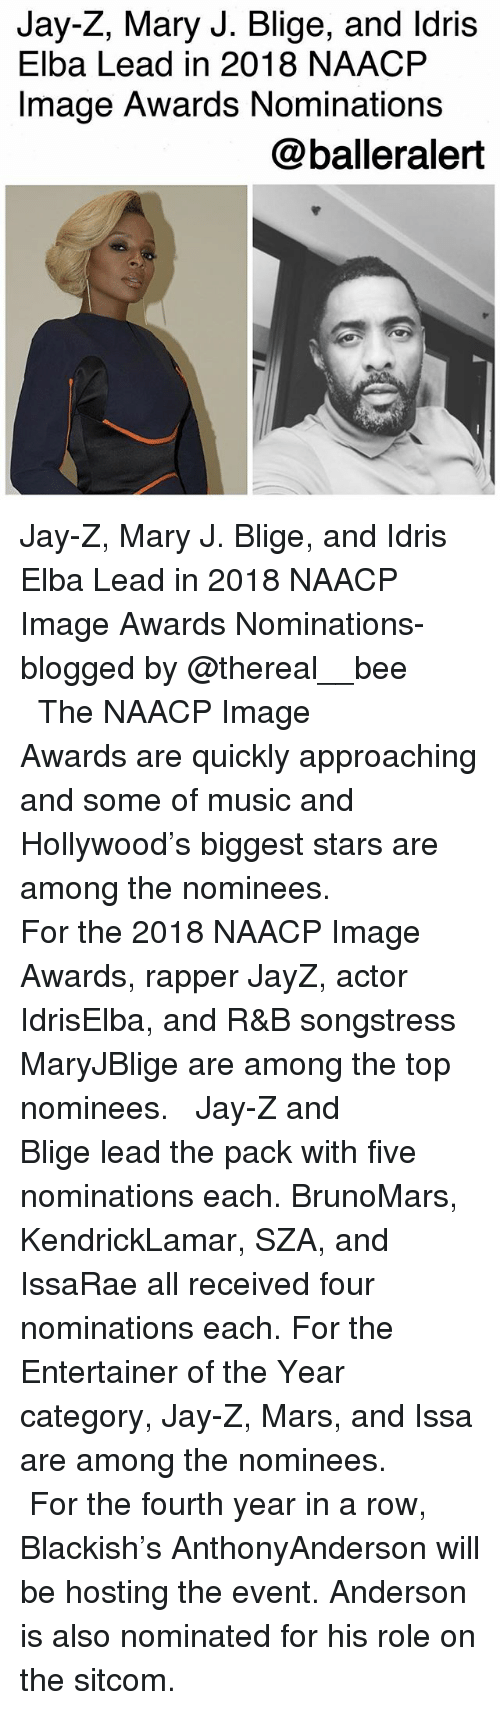 Idris Elba, Jay, and Jay Z: Jay-Z, Mary J. Blige, and ldris  Elba Lead in 2018 NAACP  Image Awards Nominations  @balleralert Jay-Z, Mary J. Blige, and Idris Elba Lead in 2018 NAACP Image Awards Nominations-blogged by @thereal__bee ⠀⠀⠀⠀⠀⠀⠀⠀⠀ ⠀⠀ The NAACP Image Awards are quickly approaching and some of music and Hollywood's biggest stars are among the nominees. ⠀⠀⠀⠀⠀⠀⠀⠀⠀ ⠀⠀ For the 2018 NAACP Image Awards, rapper JayZ, actor IdrisElba, and R&B songstress MaryJBlige are among the top nominees. ⠀⠀⠀⠀⠀⠀⠀⠀⠀ ⠀⠀ Jay-Z and Blige lead the pack with five nominations each. BrunoMars, KendrickLamar, SZA, and IssaRae all received four nominations each. For the Entertainer of the Year category, Jay-Z, Mars, and Issa are among the nominees. ⠀⠀⠀⠀⠀⠀⠀⠀⠀ ⠀⠀ For the fourth year in a row, Blackish's AnthonyAnderson will be hosting the event. Anderson is also nominated for his role on the sitcom.